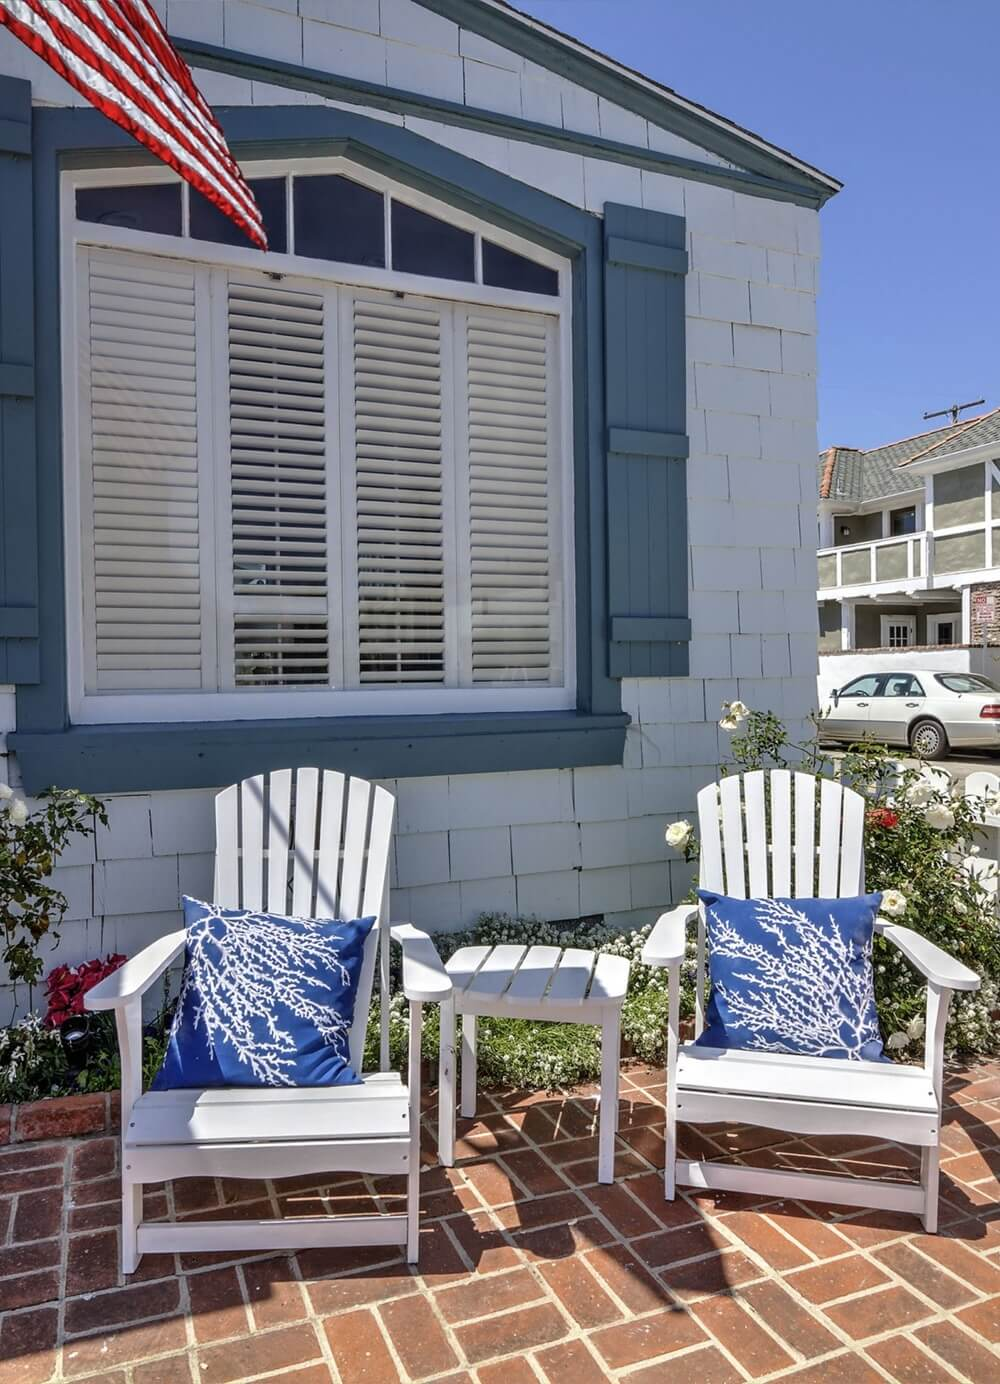 Charming Balboa Island Outside Seating area